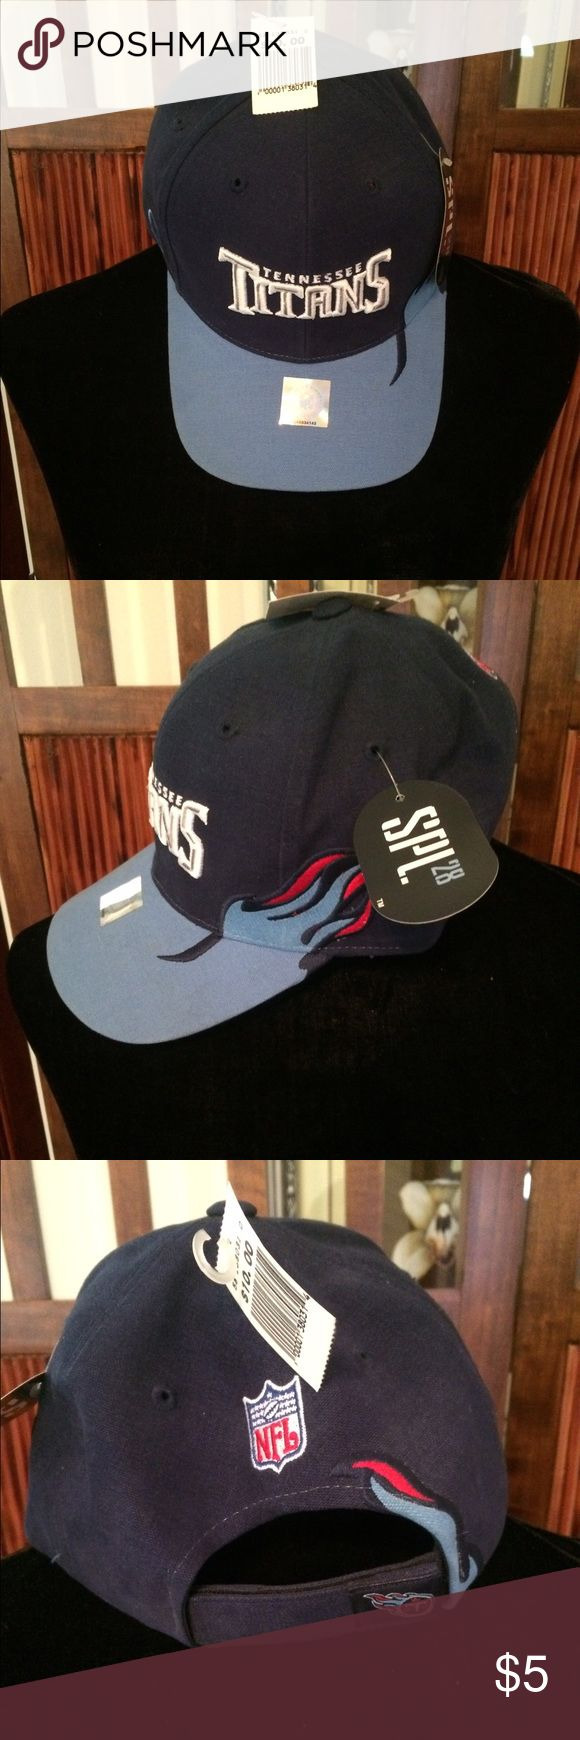 NFL Tennessee Titans Hat NWT NFL Brand Tennessee Titans Hat NWT.  Adjustable velcro strap. Unworn and comes from a smoke-free and pet-free home. Thanks for looking 😊 NFL Accessories Hats